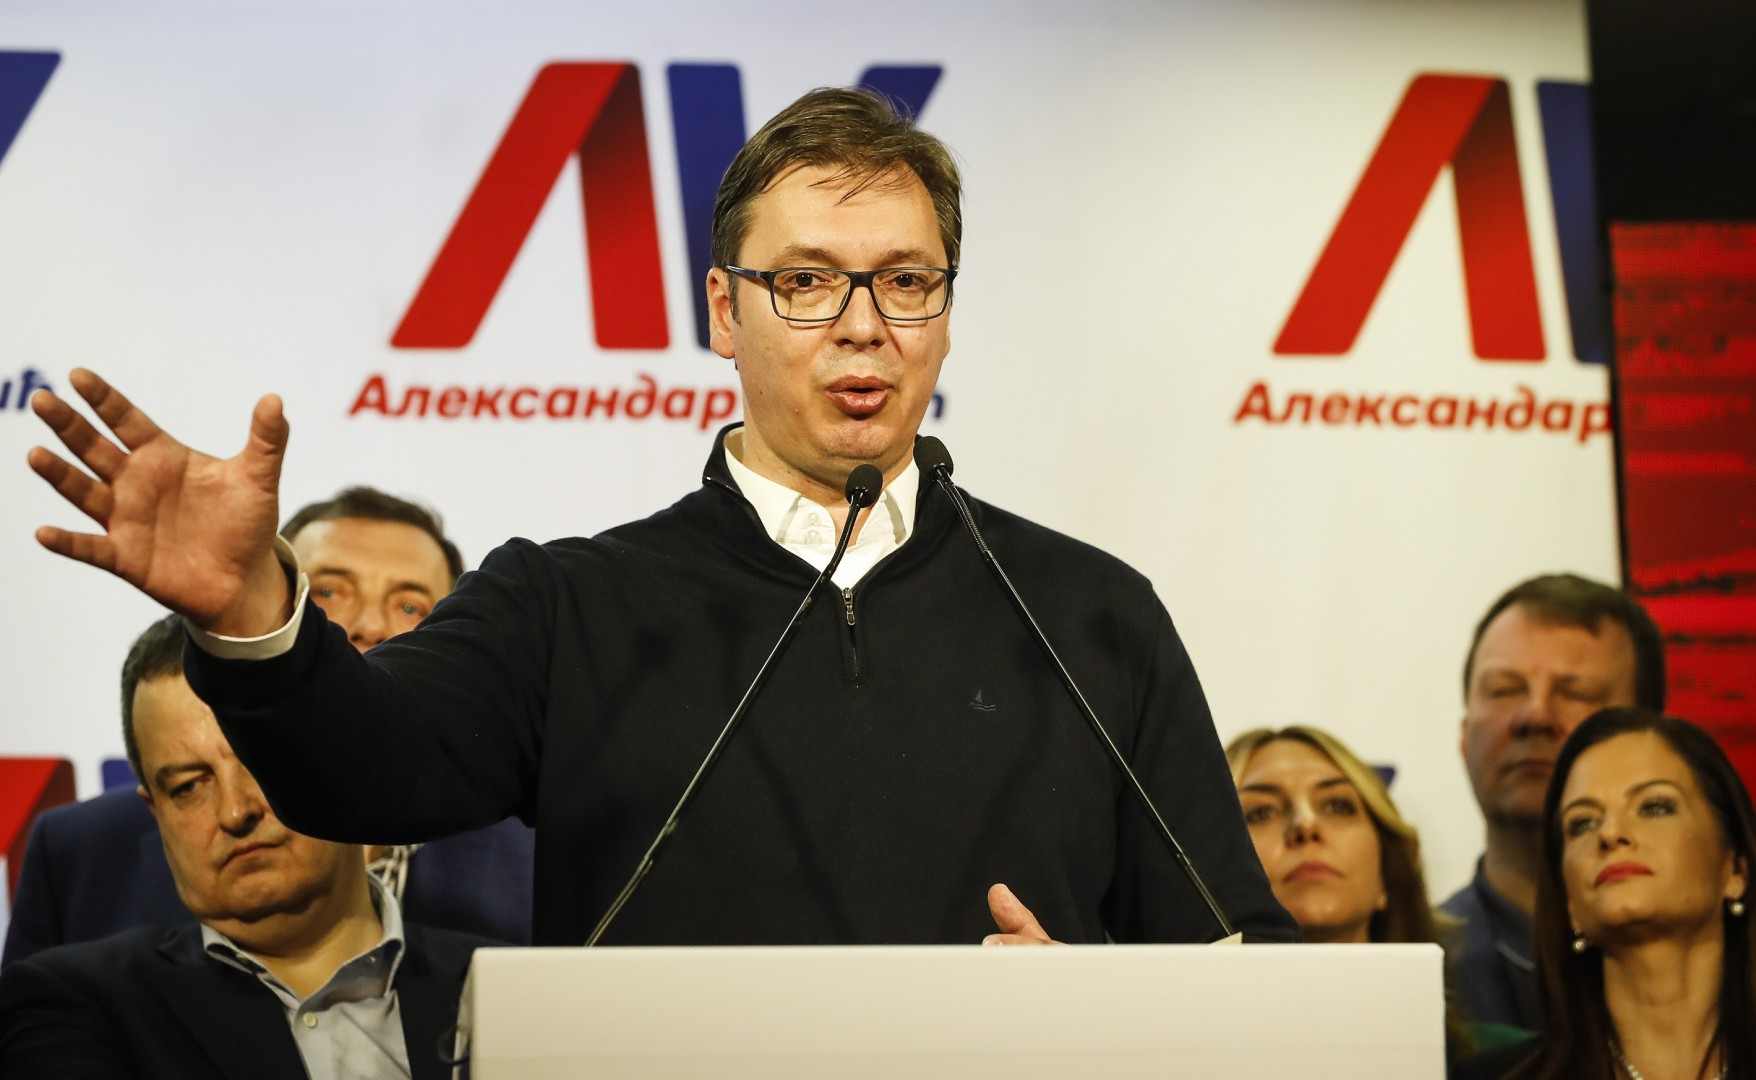 BELGRADE, SERBIA - APRIL 02: Presidential candidate and Serbian Prime Minister Aleksandar Vucic speaks during a press conference on April 2, 2017 in Belgrade, Serbia.  According to the research Vucic won about 55 percent of the vote, above the 50 percent threshold required to win in the first round. (Photo by Srdjan Stevanovic/Getty Images)